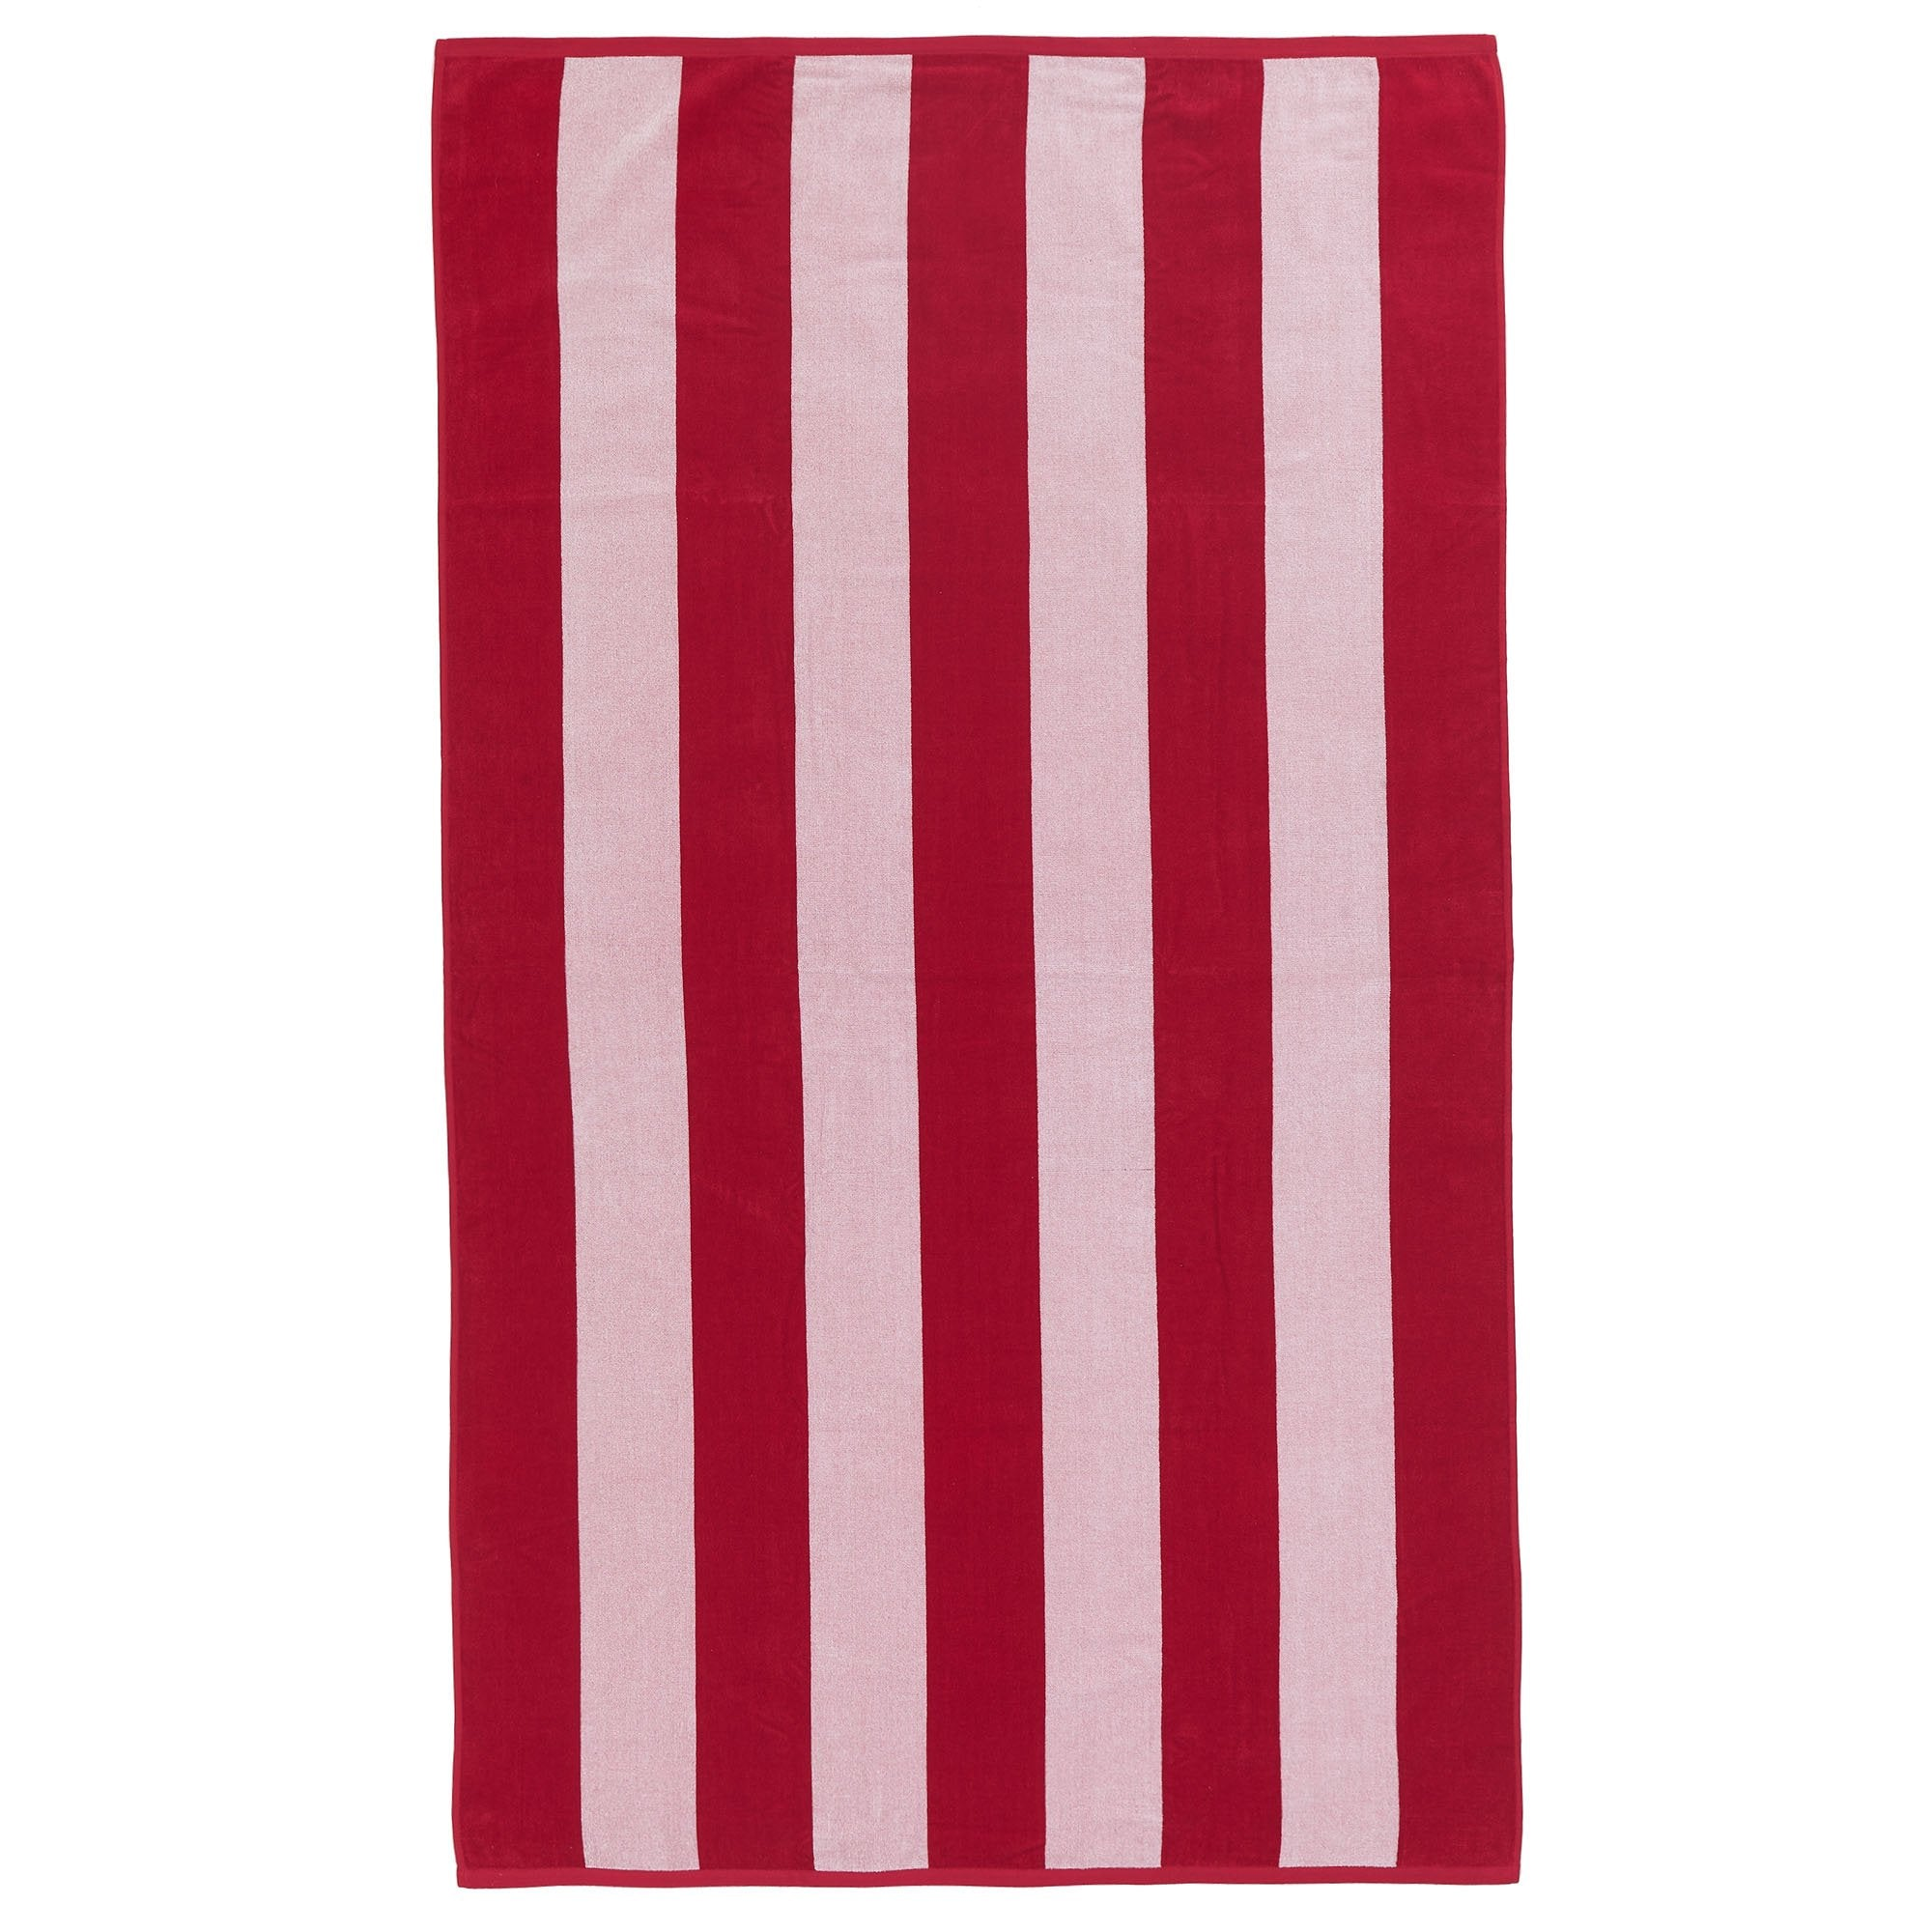 Serena beach towel, red & white, 100% cotton